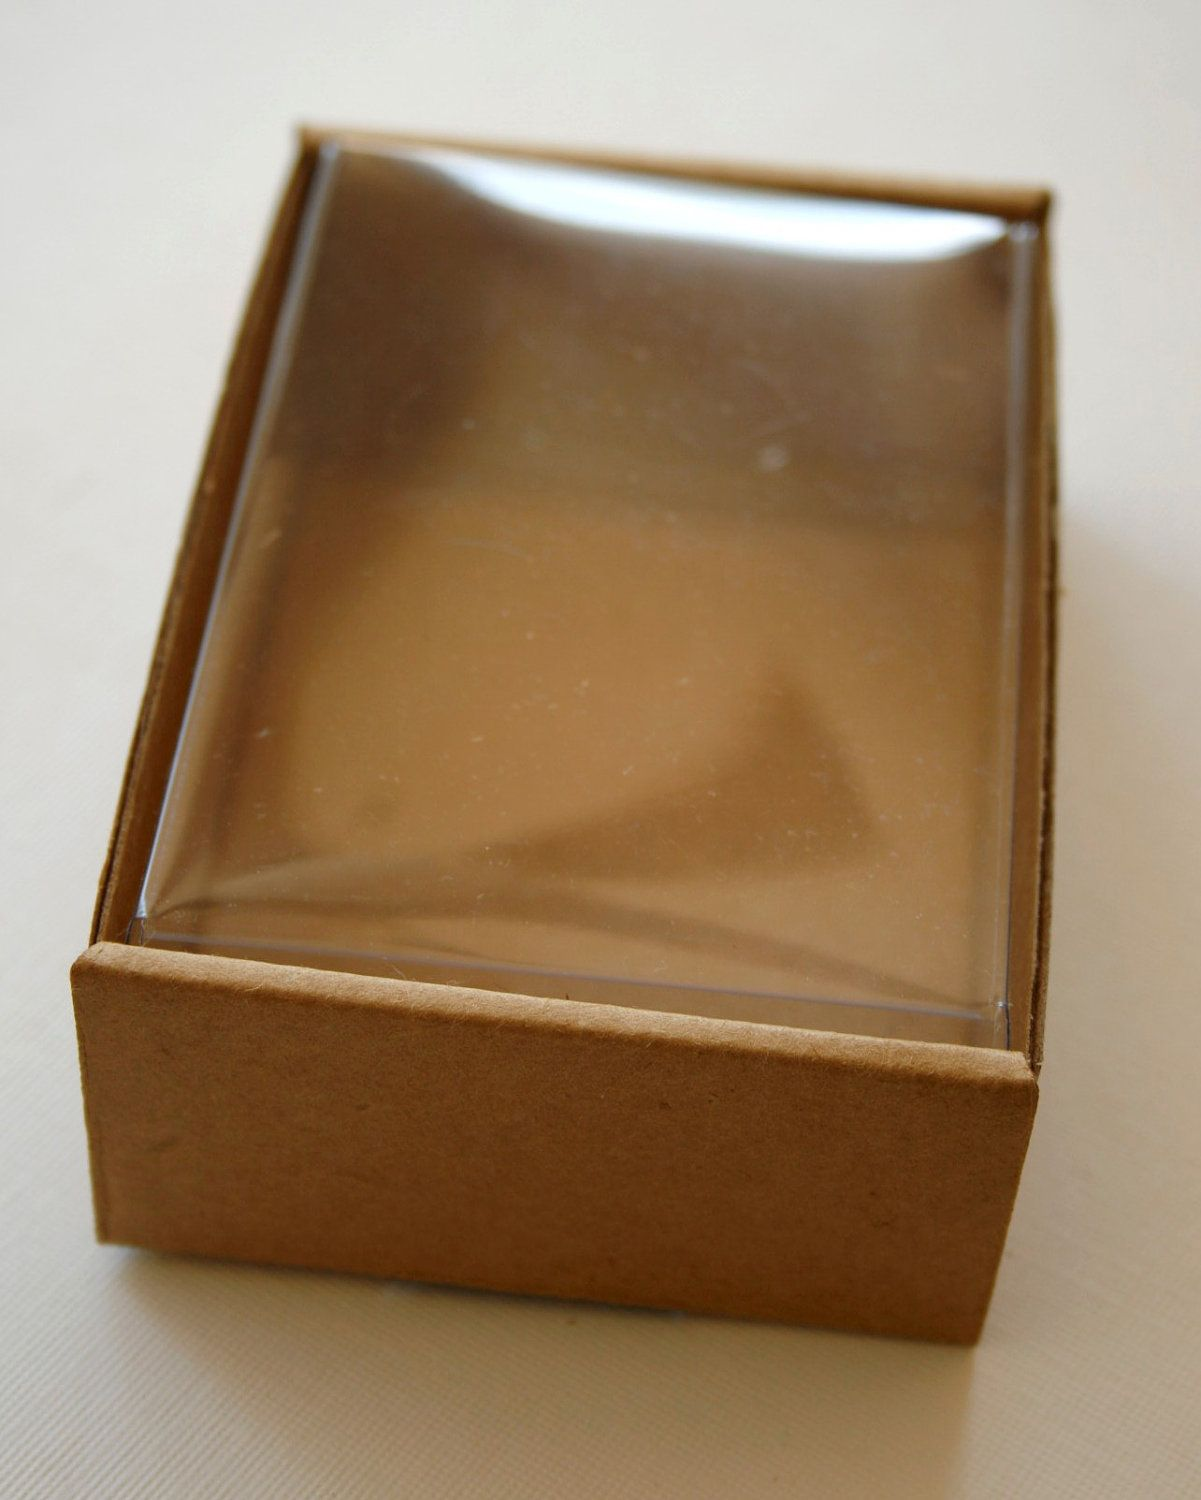 Heavy Kraft Cardboard Boxes Set Of 6 Clear Top By Intheclear Cardboard Box Kraft Packaging Box Packaging